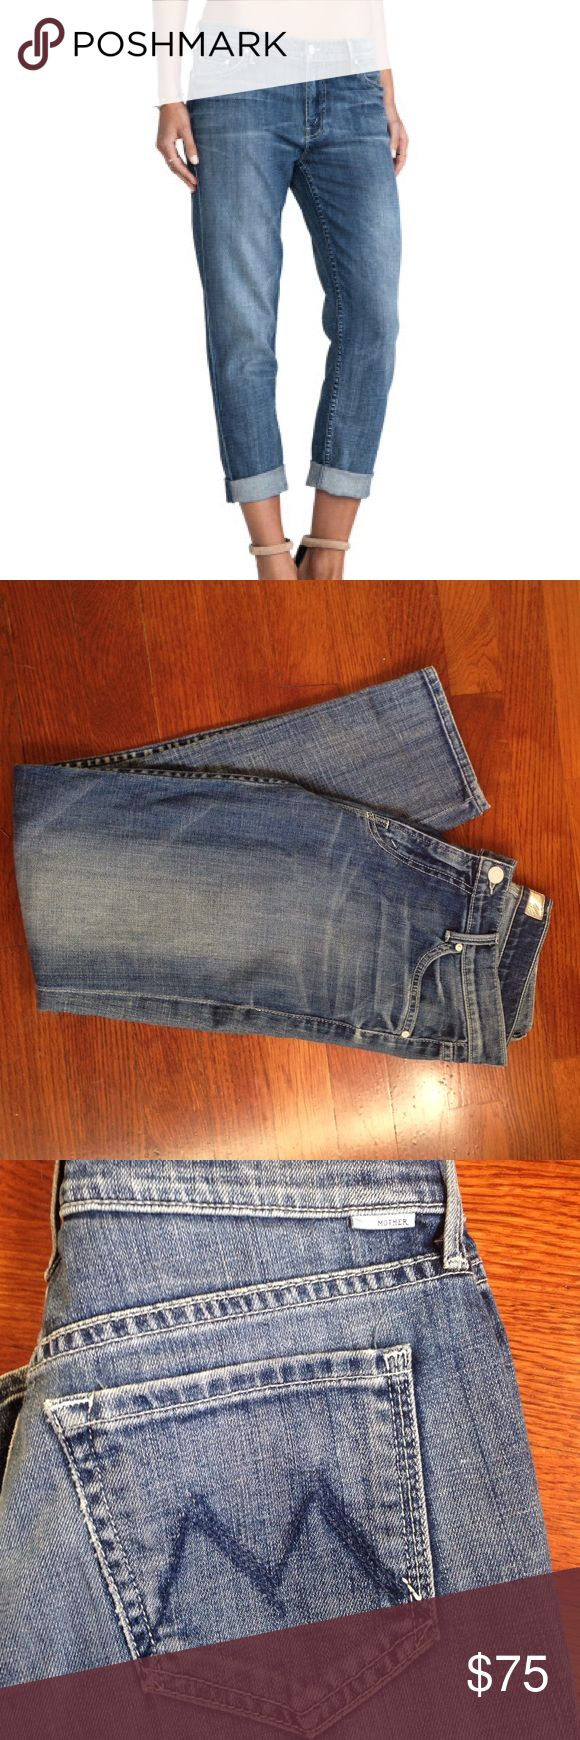 MOTHER Denim: THE DROP OUT Hooked Amazingly soft denim, most comfy jeans ever!  Can be rolled or straight leg, has a slight taper, boyfriend style. MOTHER THE DROP OUT HOOKED. In regards to fit, if you're a 25, they'll have more of a boyfriend fit (like picture 1); I'm a 27 and they fit me more like a fitted Jean (pix 3 and 4).  Super cute and comfy either way!  Inseam is 26 inches unrolled. MOTHER Jeans Boyfriend